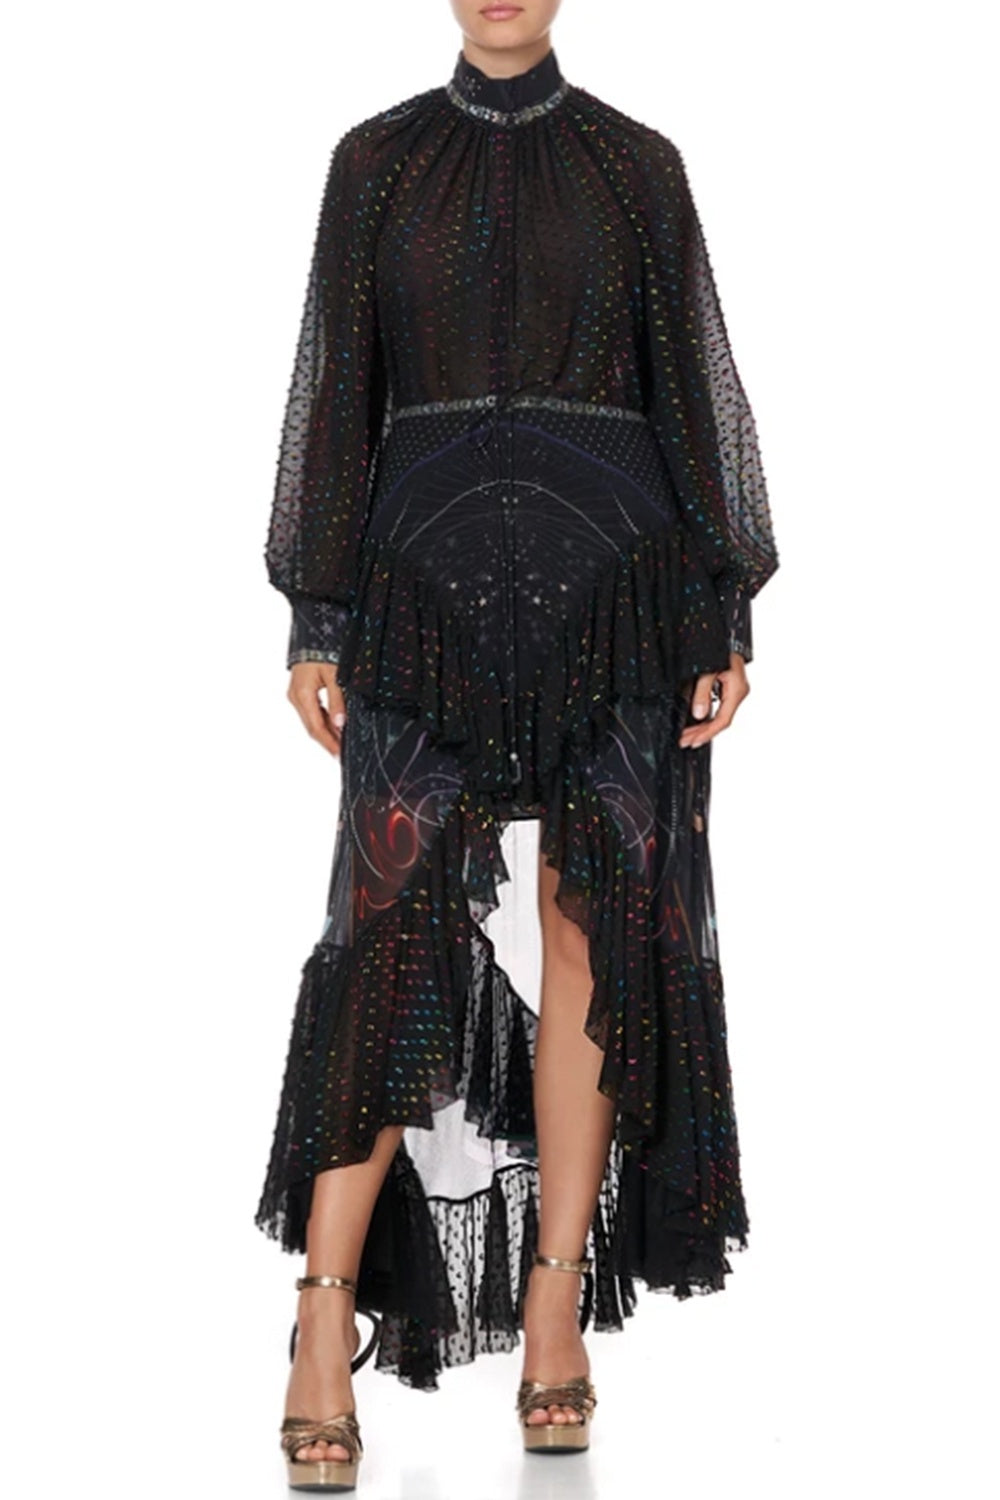 CAMILLA - MIDNIGHT MOON HOUSE MAXI SKIRT WITH DOUBLE FRILL WAS $969